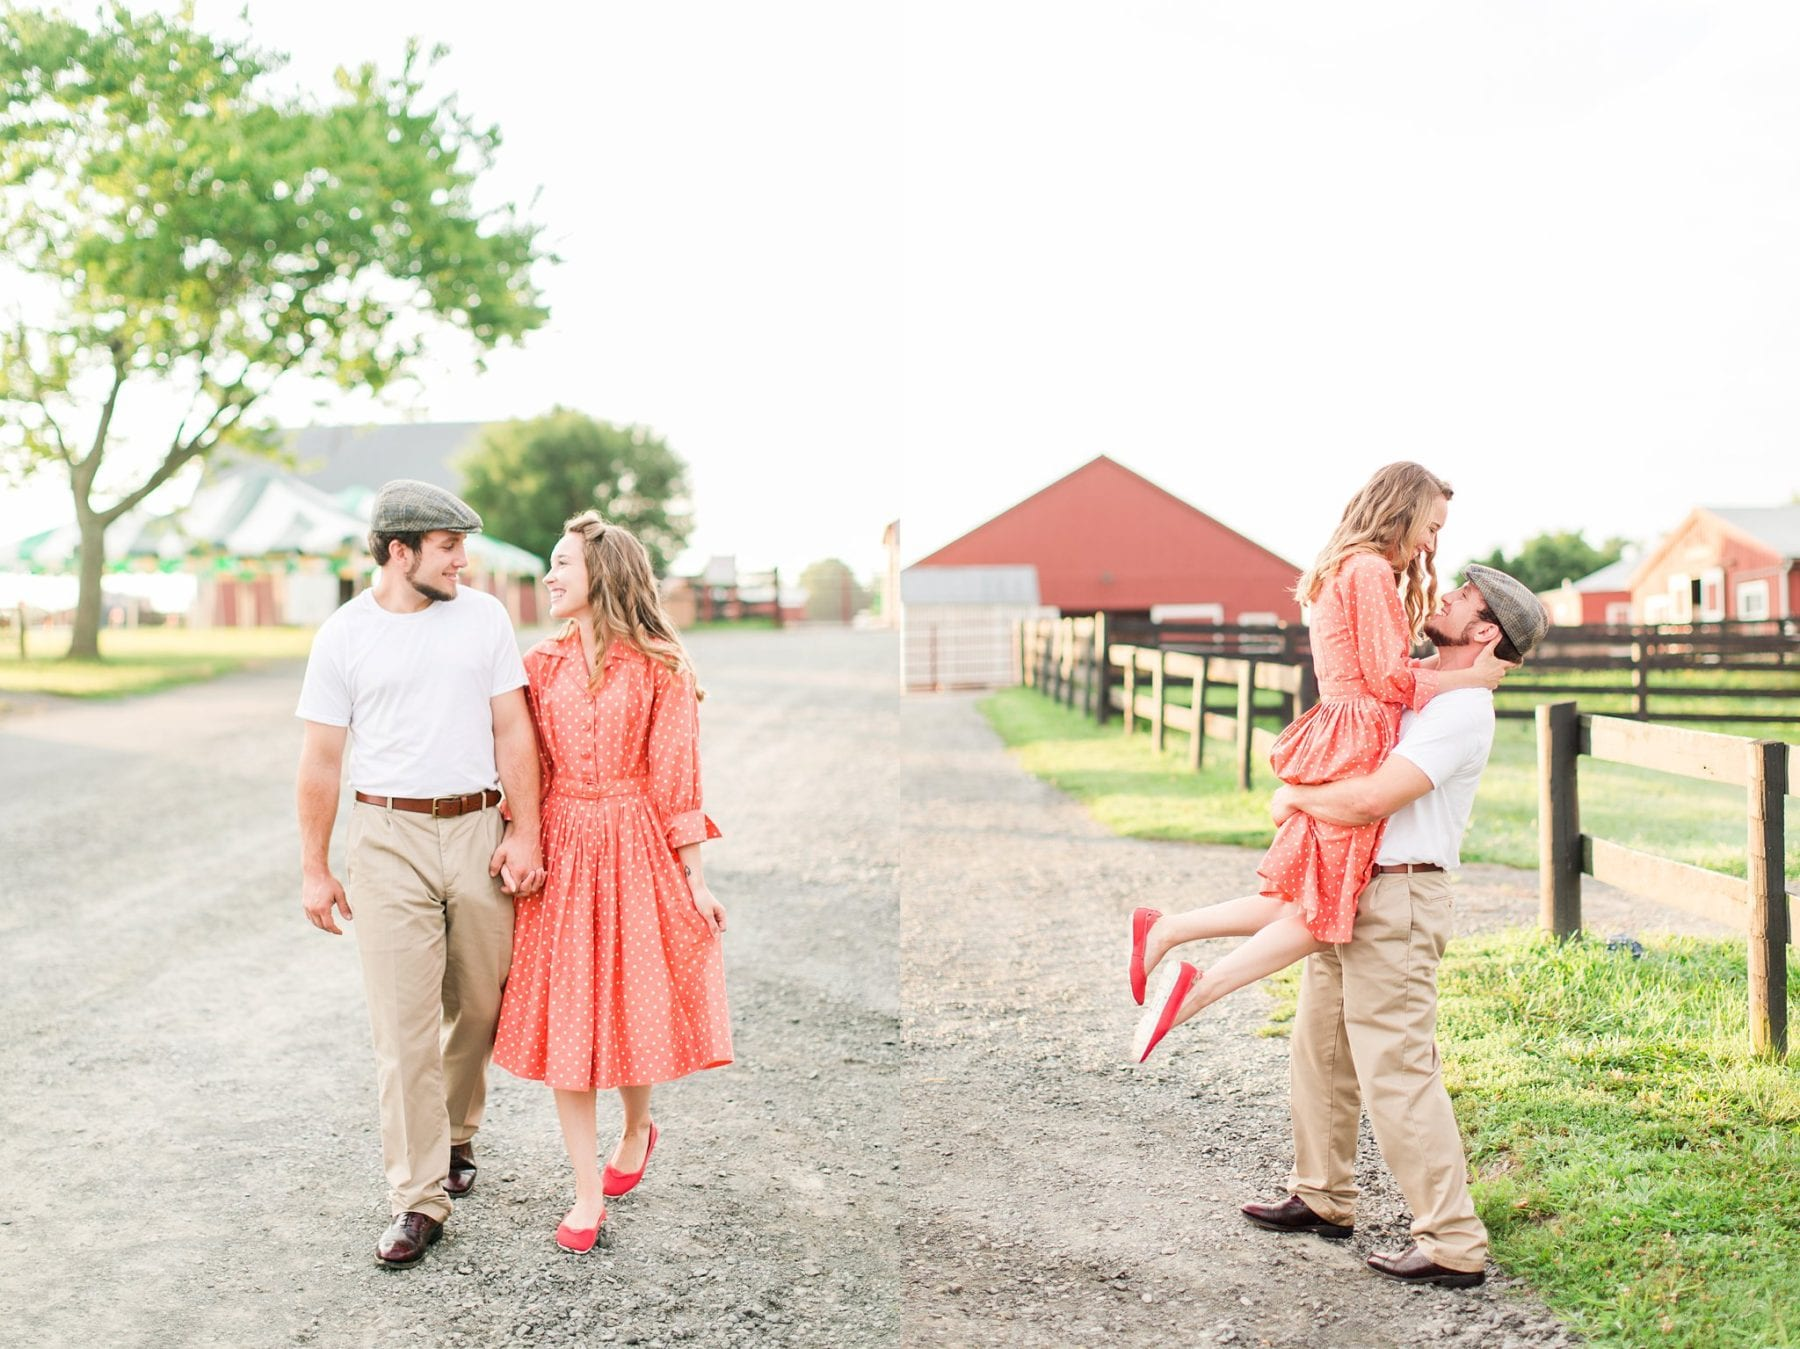 County Fair Engagement Photos Virginia Wedding Photographer Megan Kelsey Photography Samantha & Charles-97.JPG